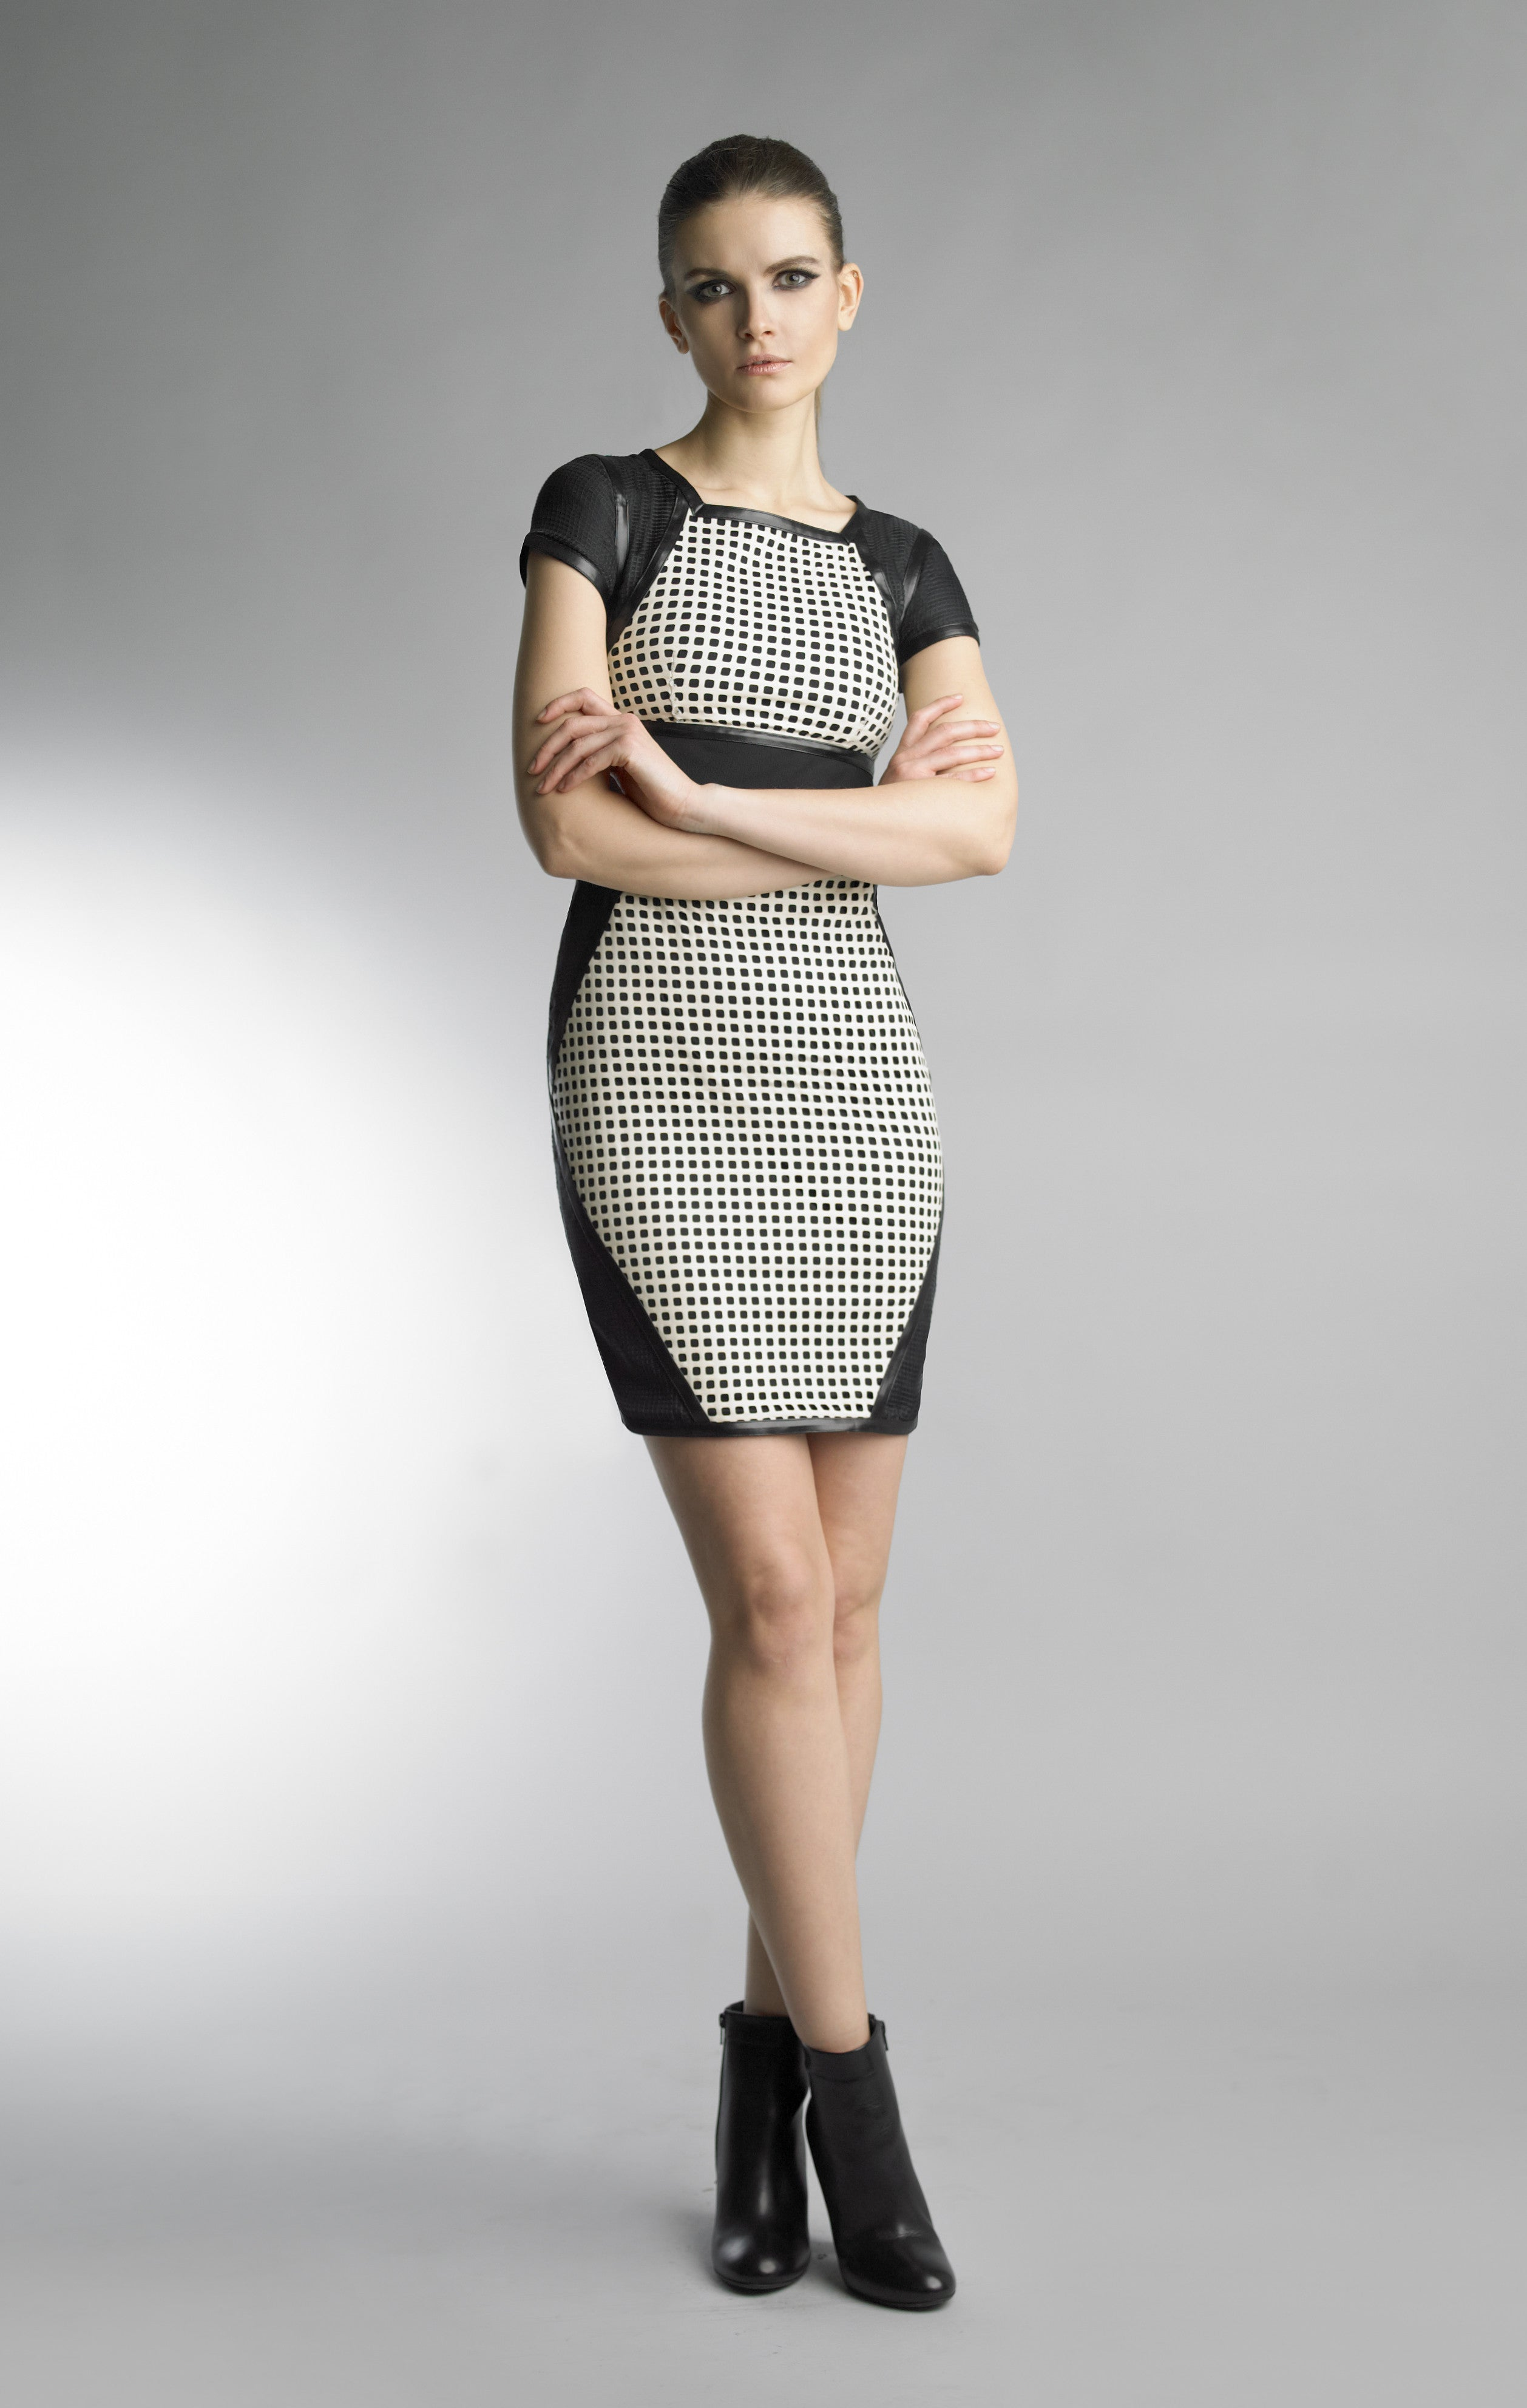 Historic New York Monochrome Collection - Ceramic Tile Leather Laser Cut Black and White Dress